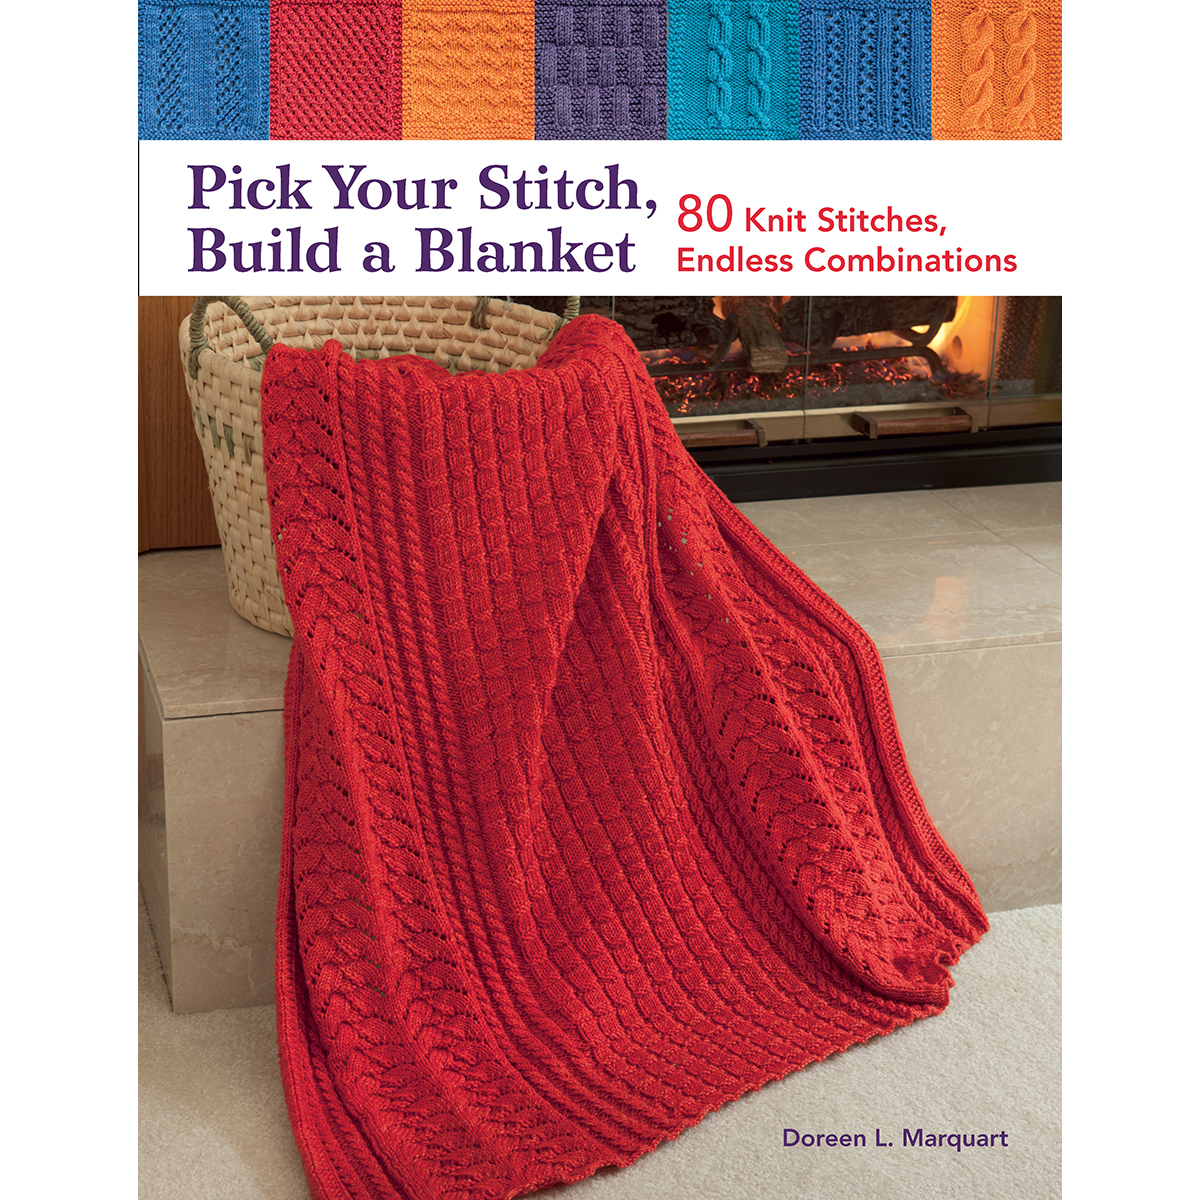 Martingale & Company-Pick Your Stitch, Build A Blanket